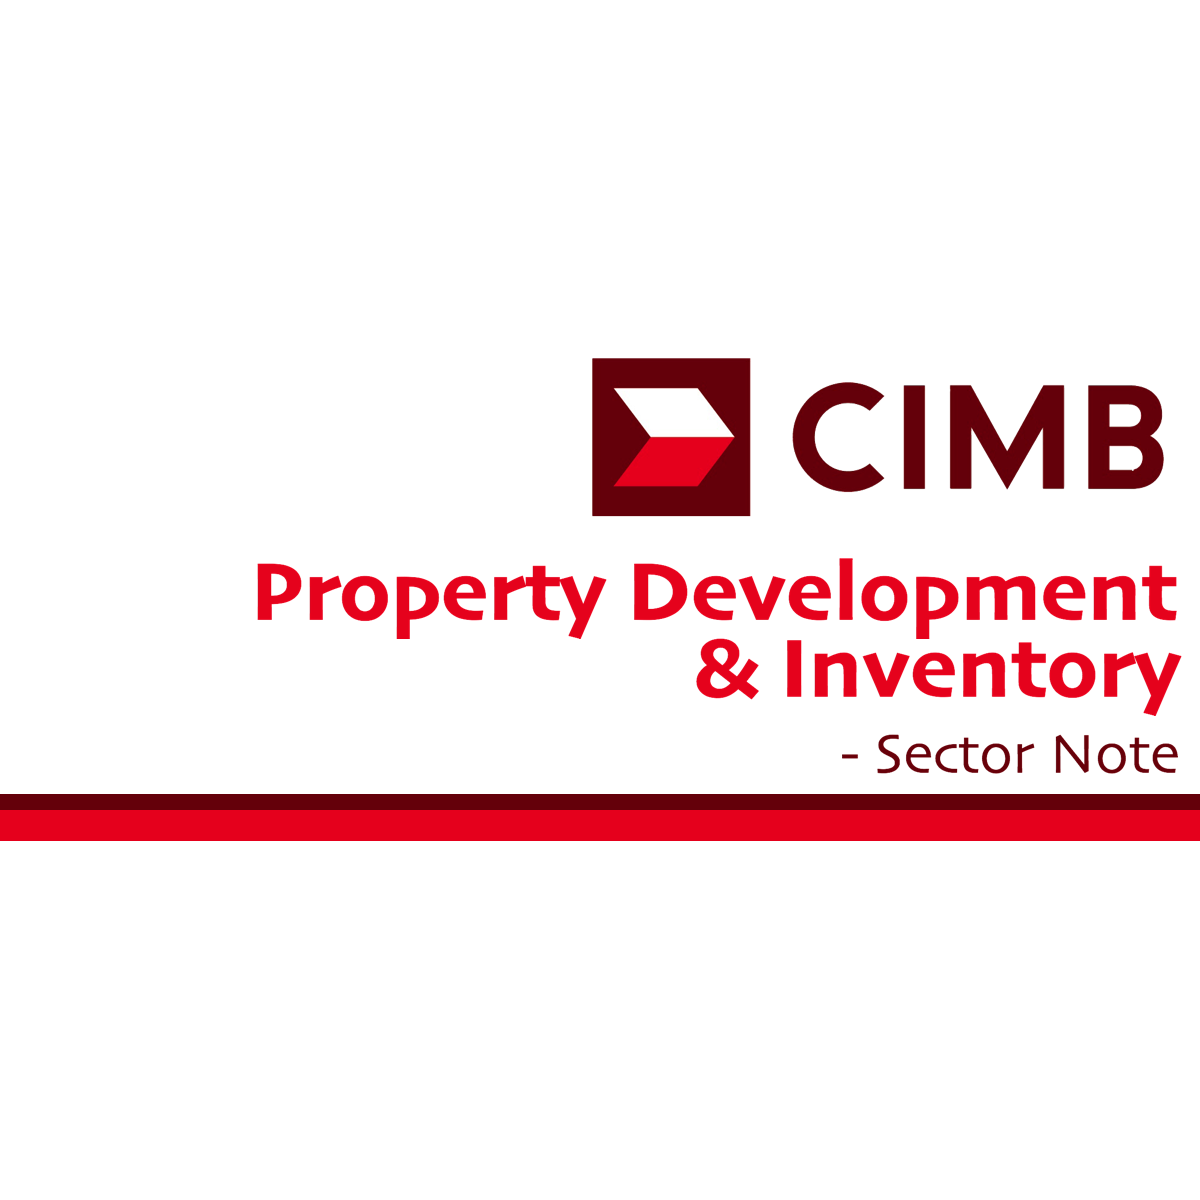 Property Sector 2H17 - CIMB Research 2017-05-30: Overweight